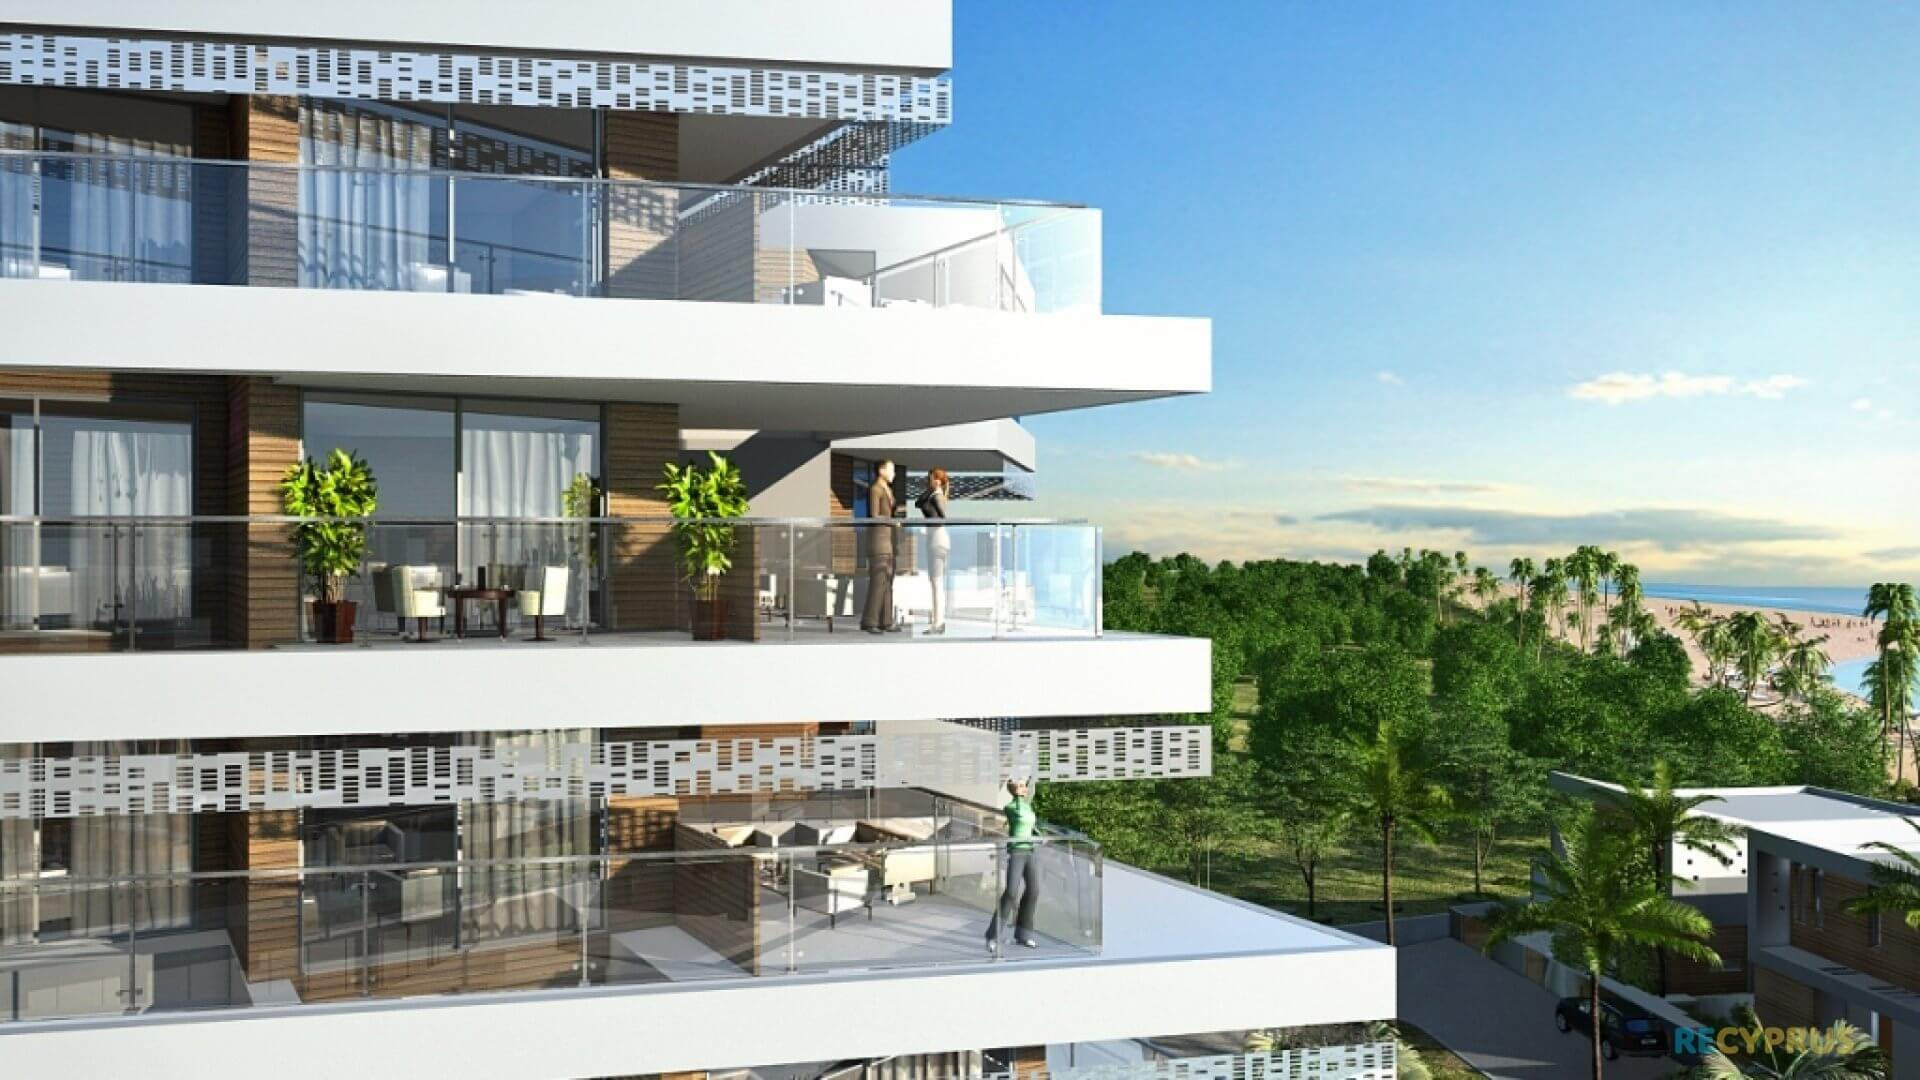 Apartment for sale Ayia Thekla Famagusta Cyprus 4 3450